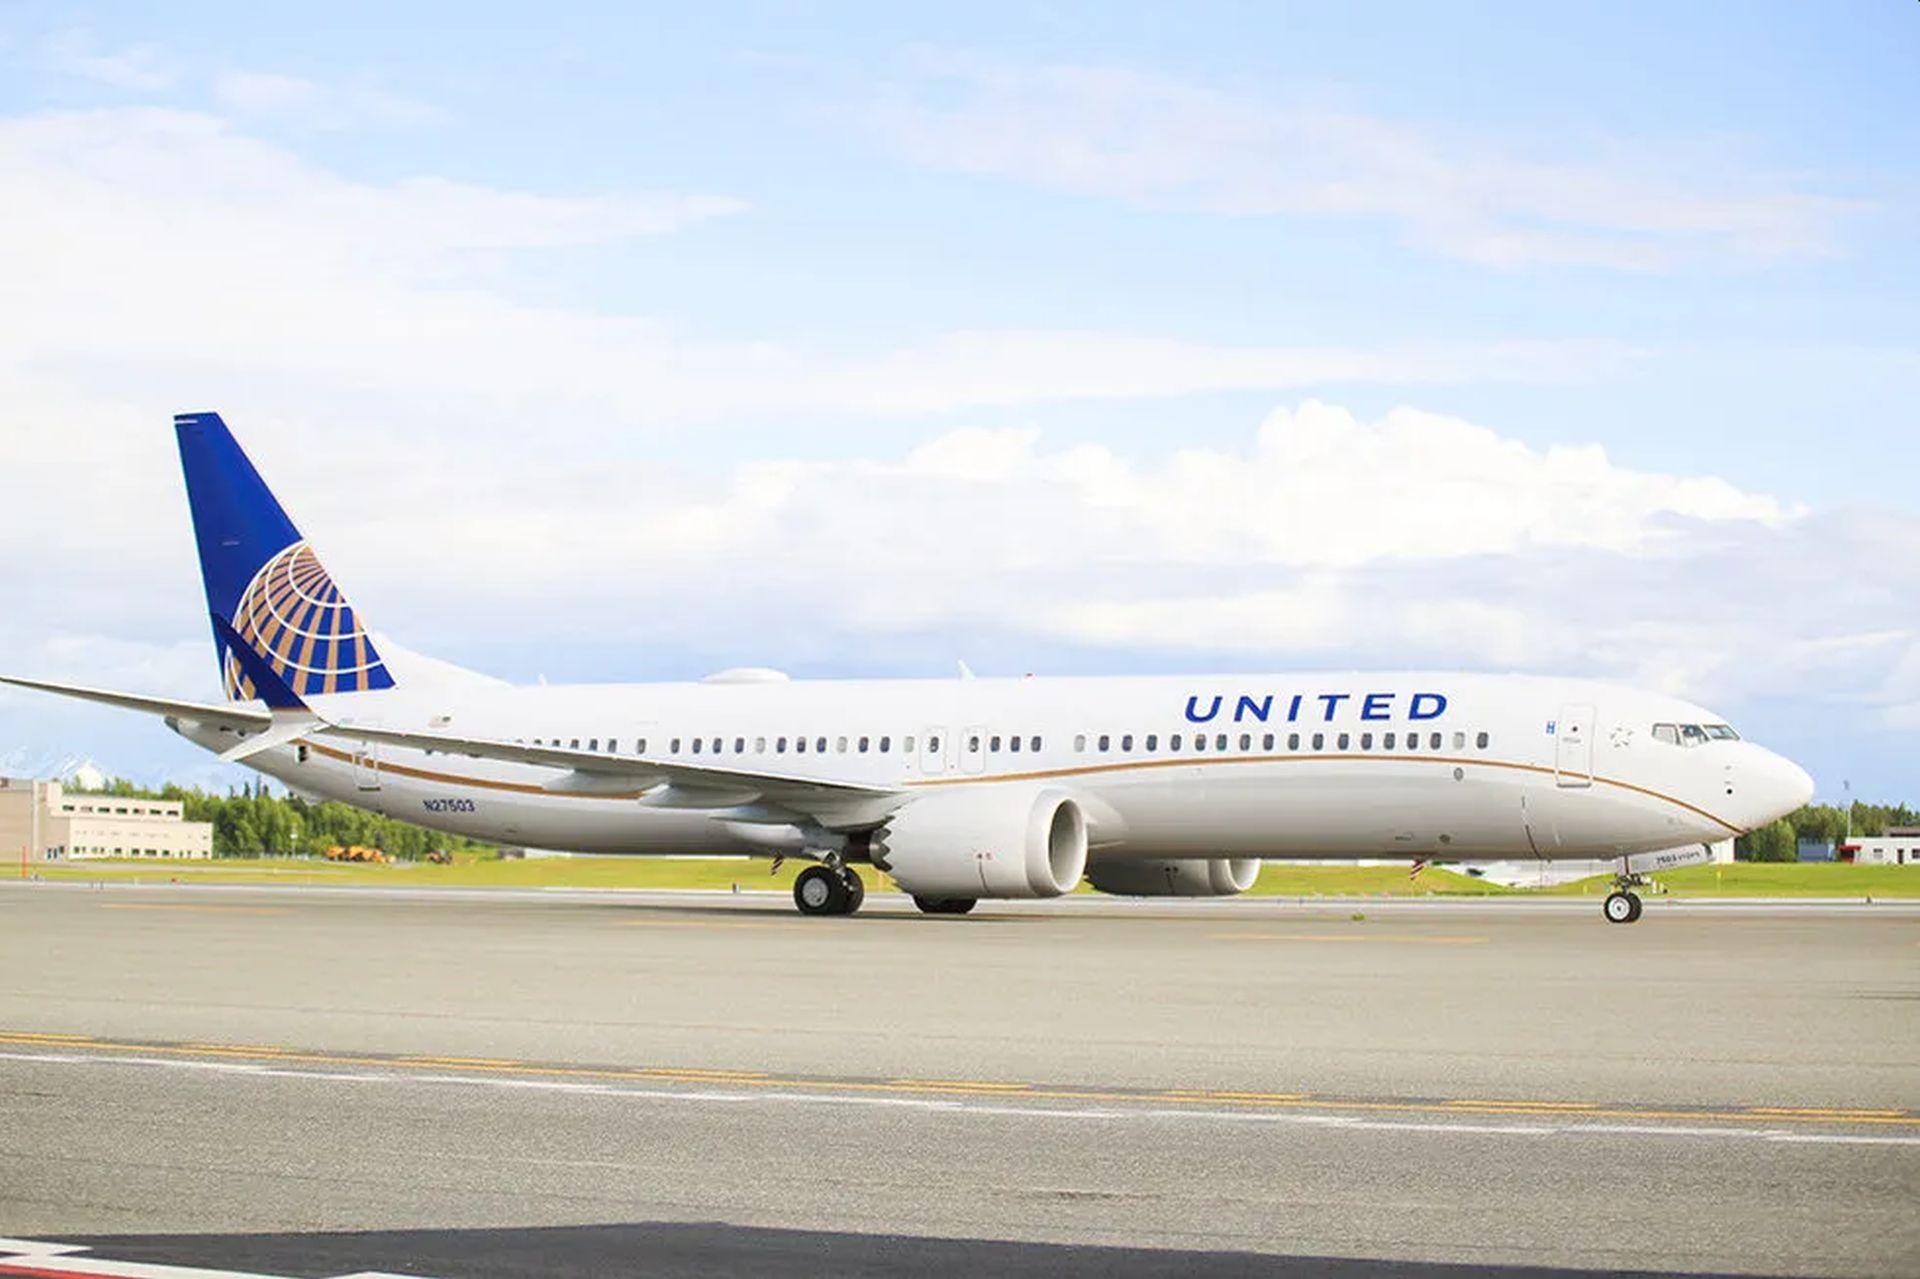 United Airlines a jejich Boeing 737 MAX 9. Foto: United Airlines